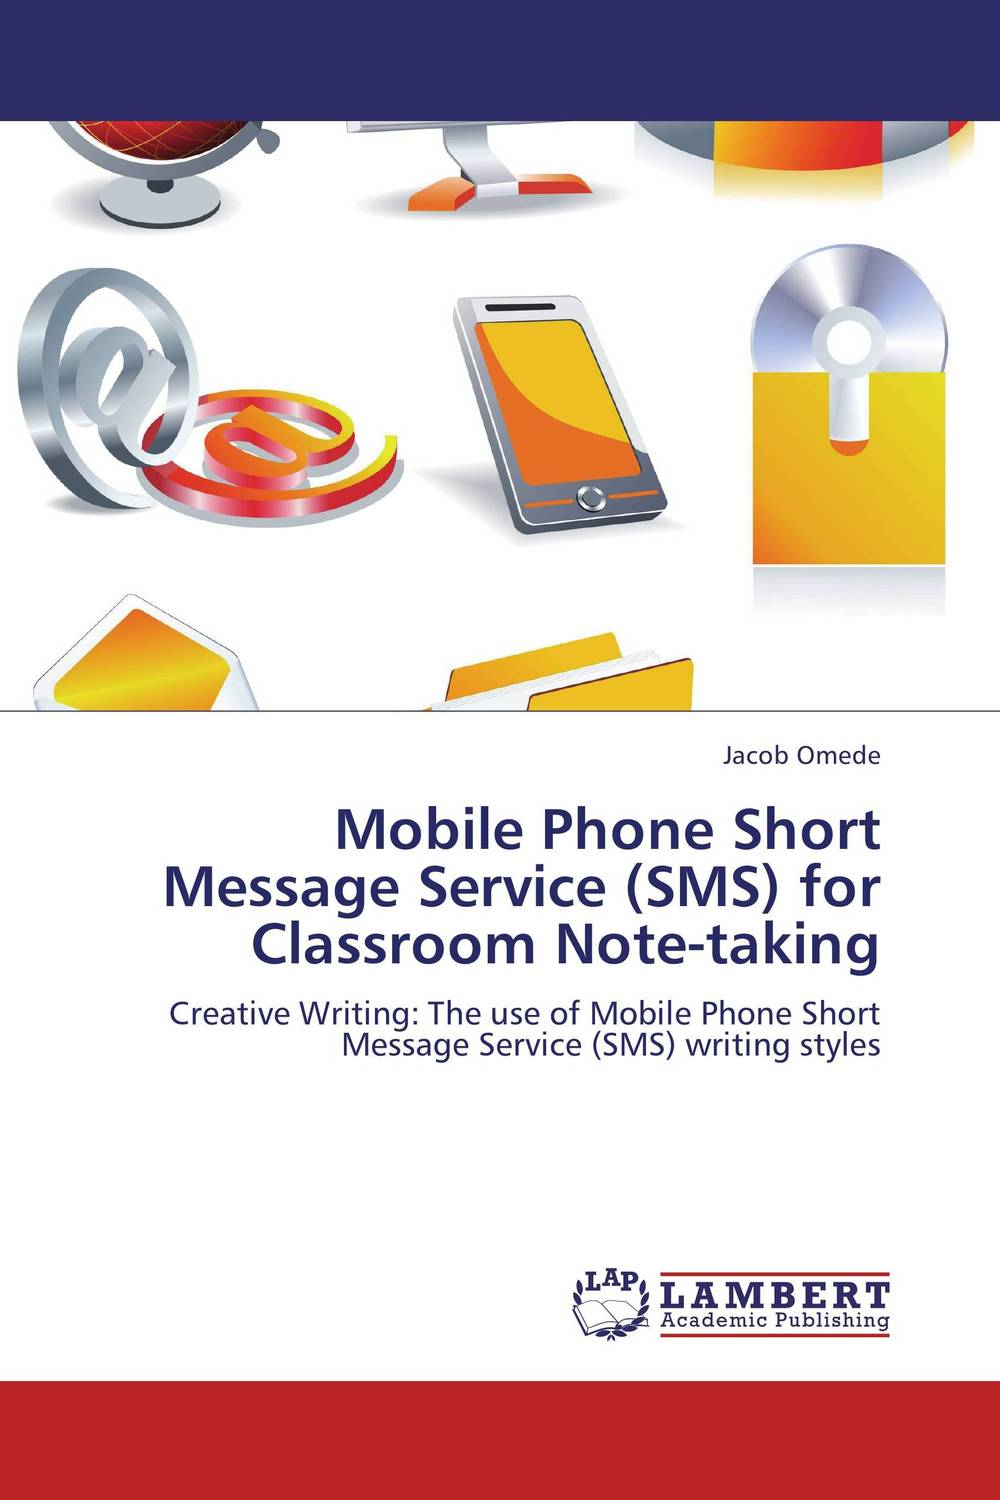 Mobile Phone Short Message Service (SMS) for Classroom Note-taking